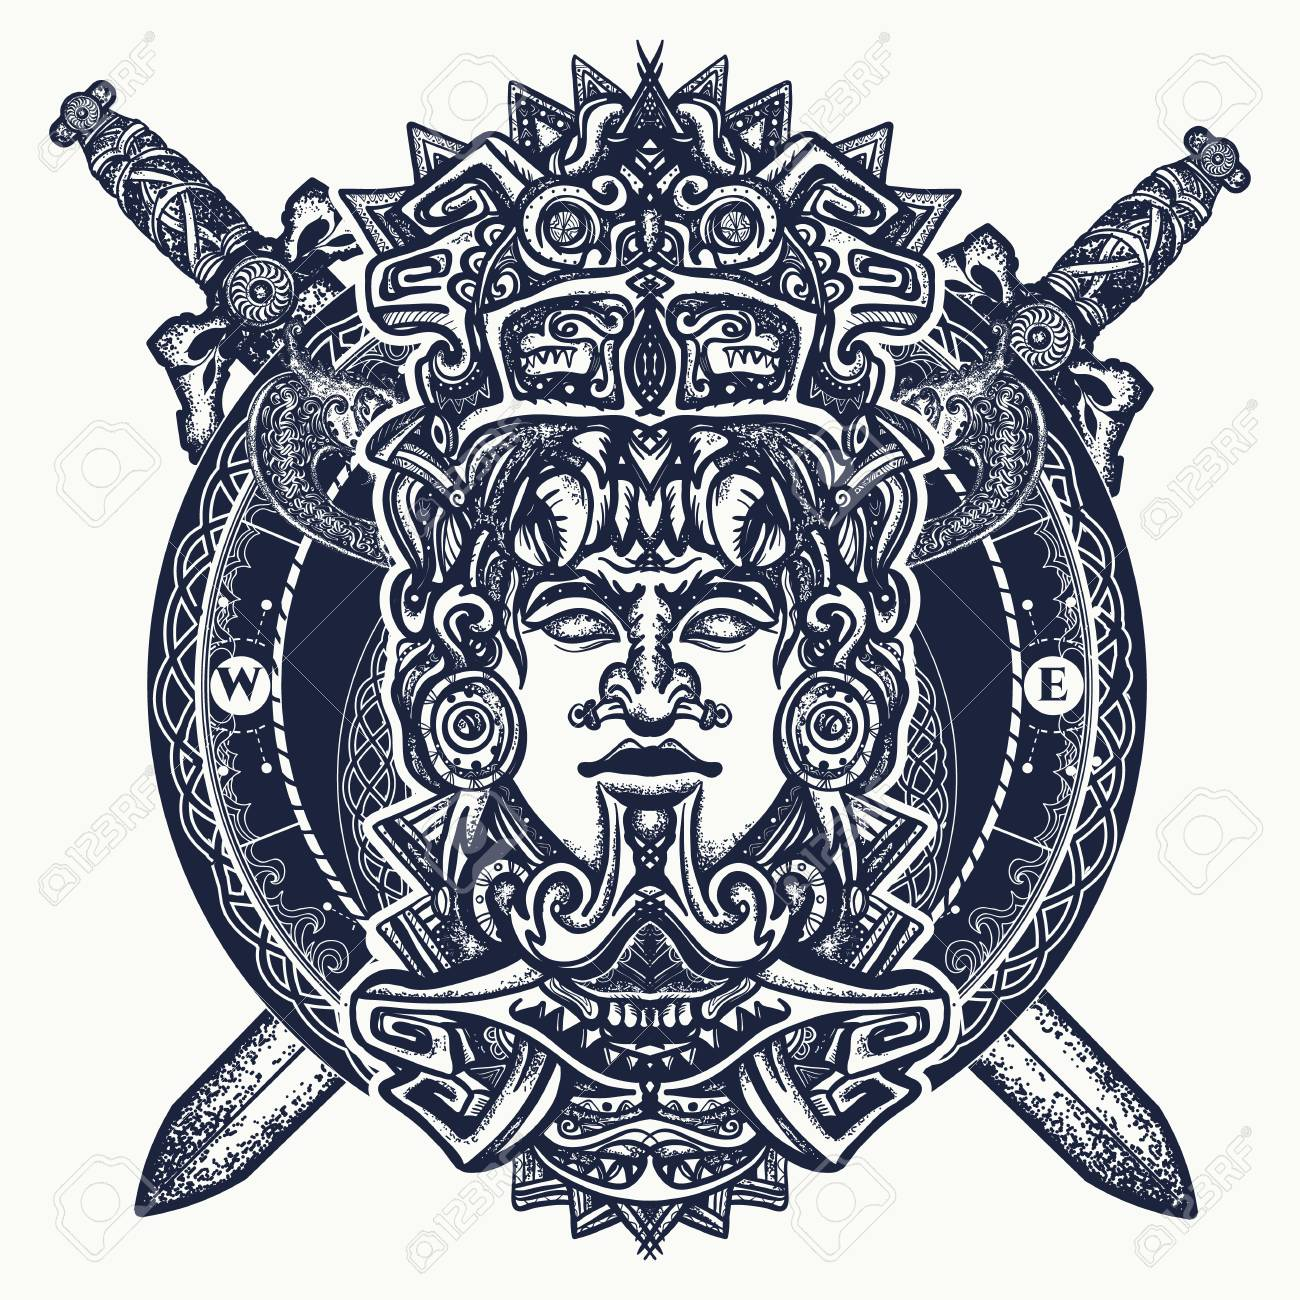 Ancient aztec totem, Mexican god warrior and crossed swords. Ancient Mayan civilization. Indian mayan carved in stone tattoo art. Mayan tattoo and t-shirt design - 92826782